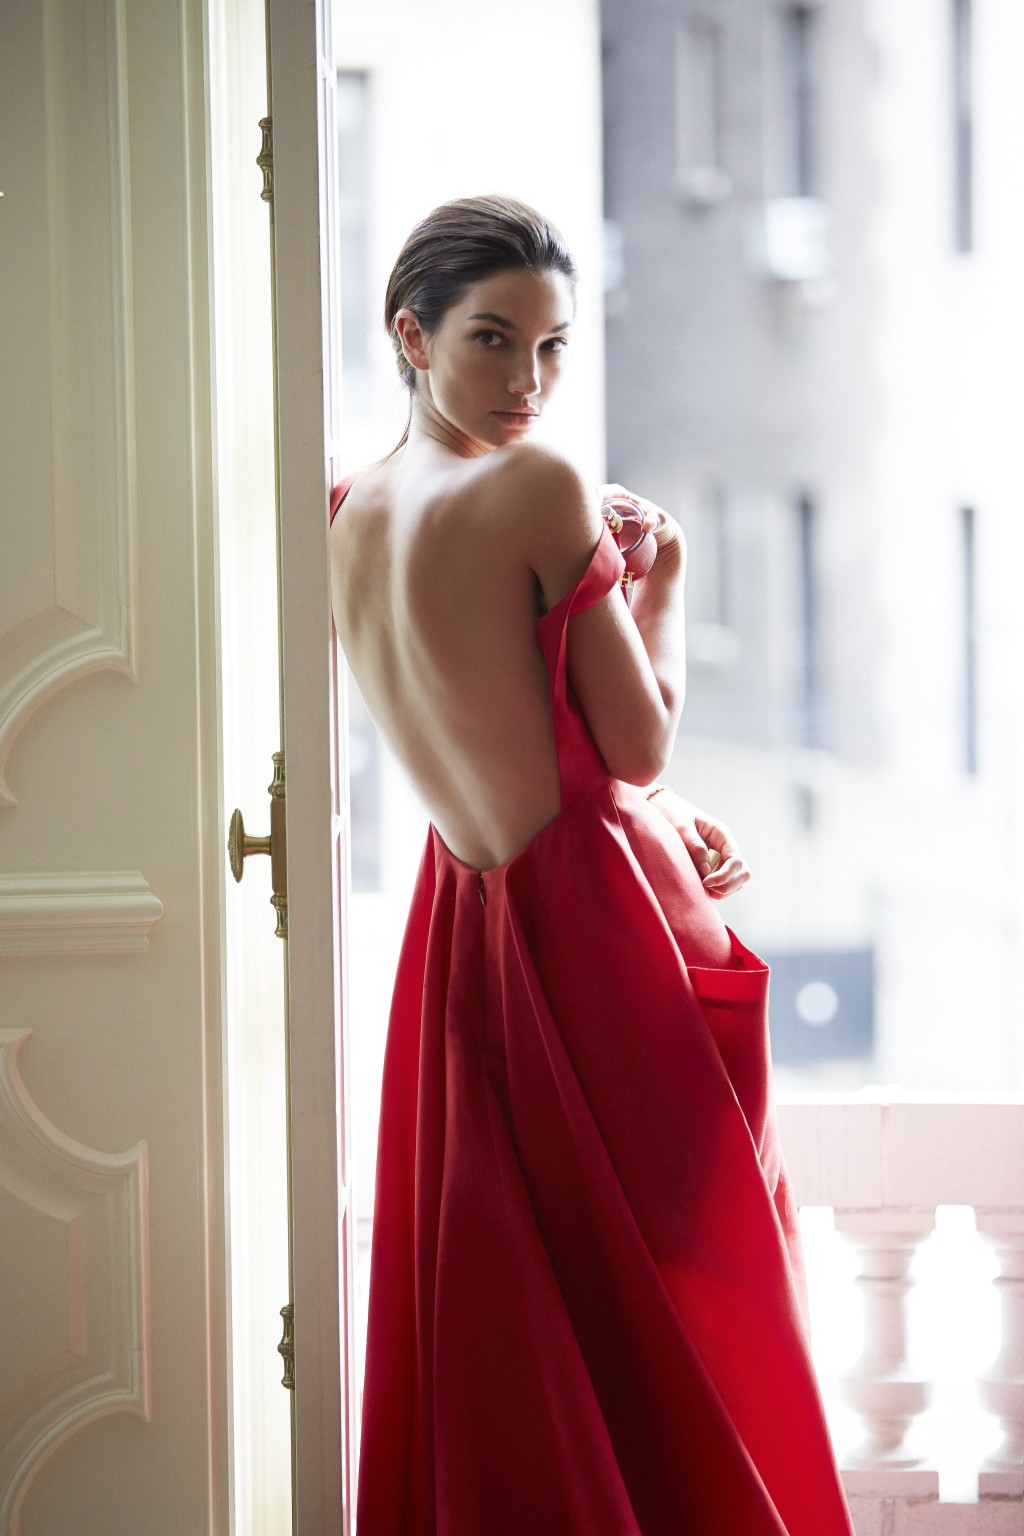 Discover an unseen side of model Lily Aldridge as she reveals everything from her go-to beauty products to her guilty pleasures in this exclusive interview.